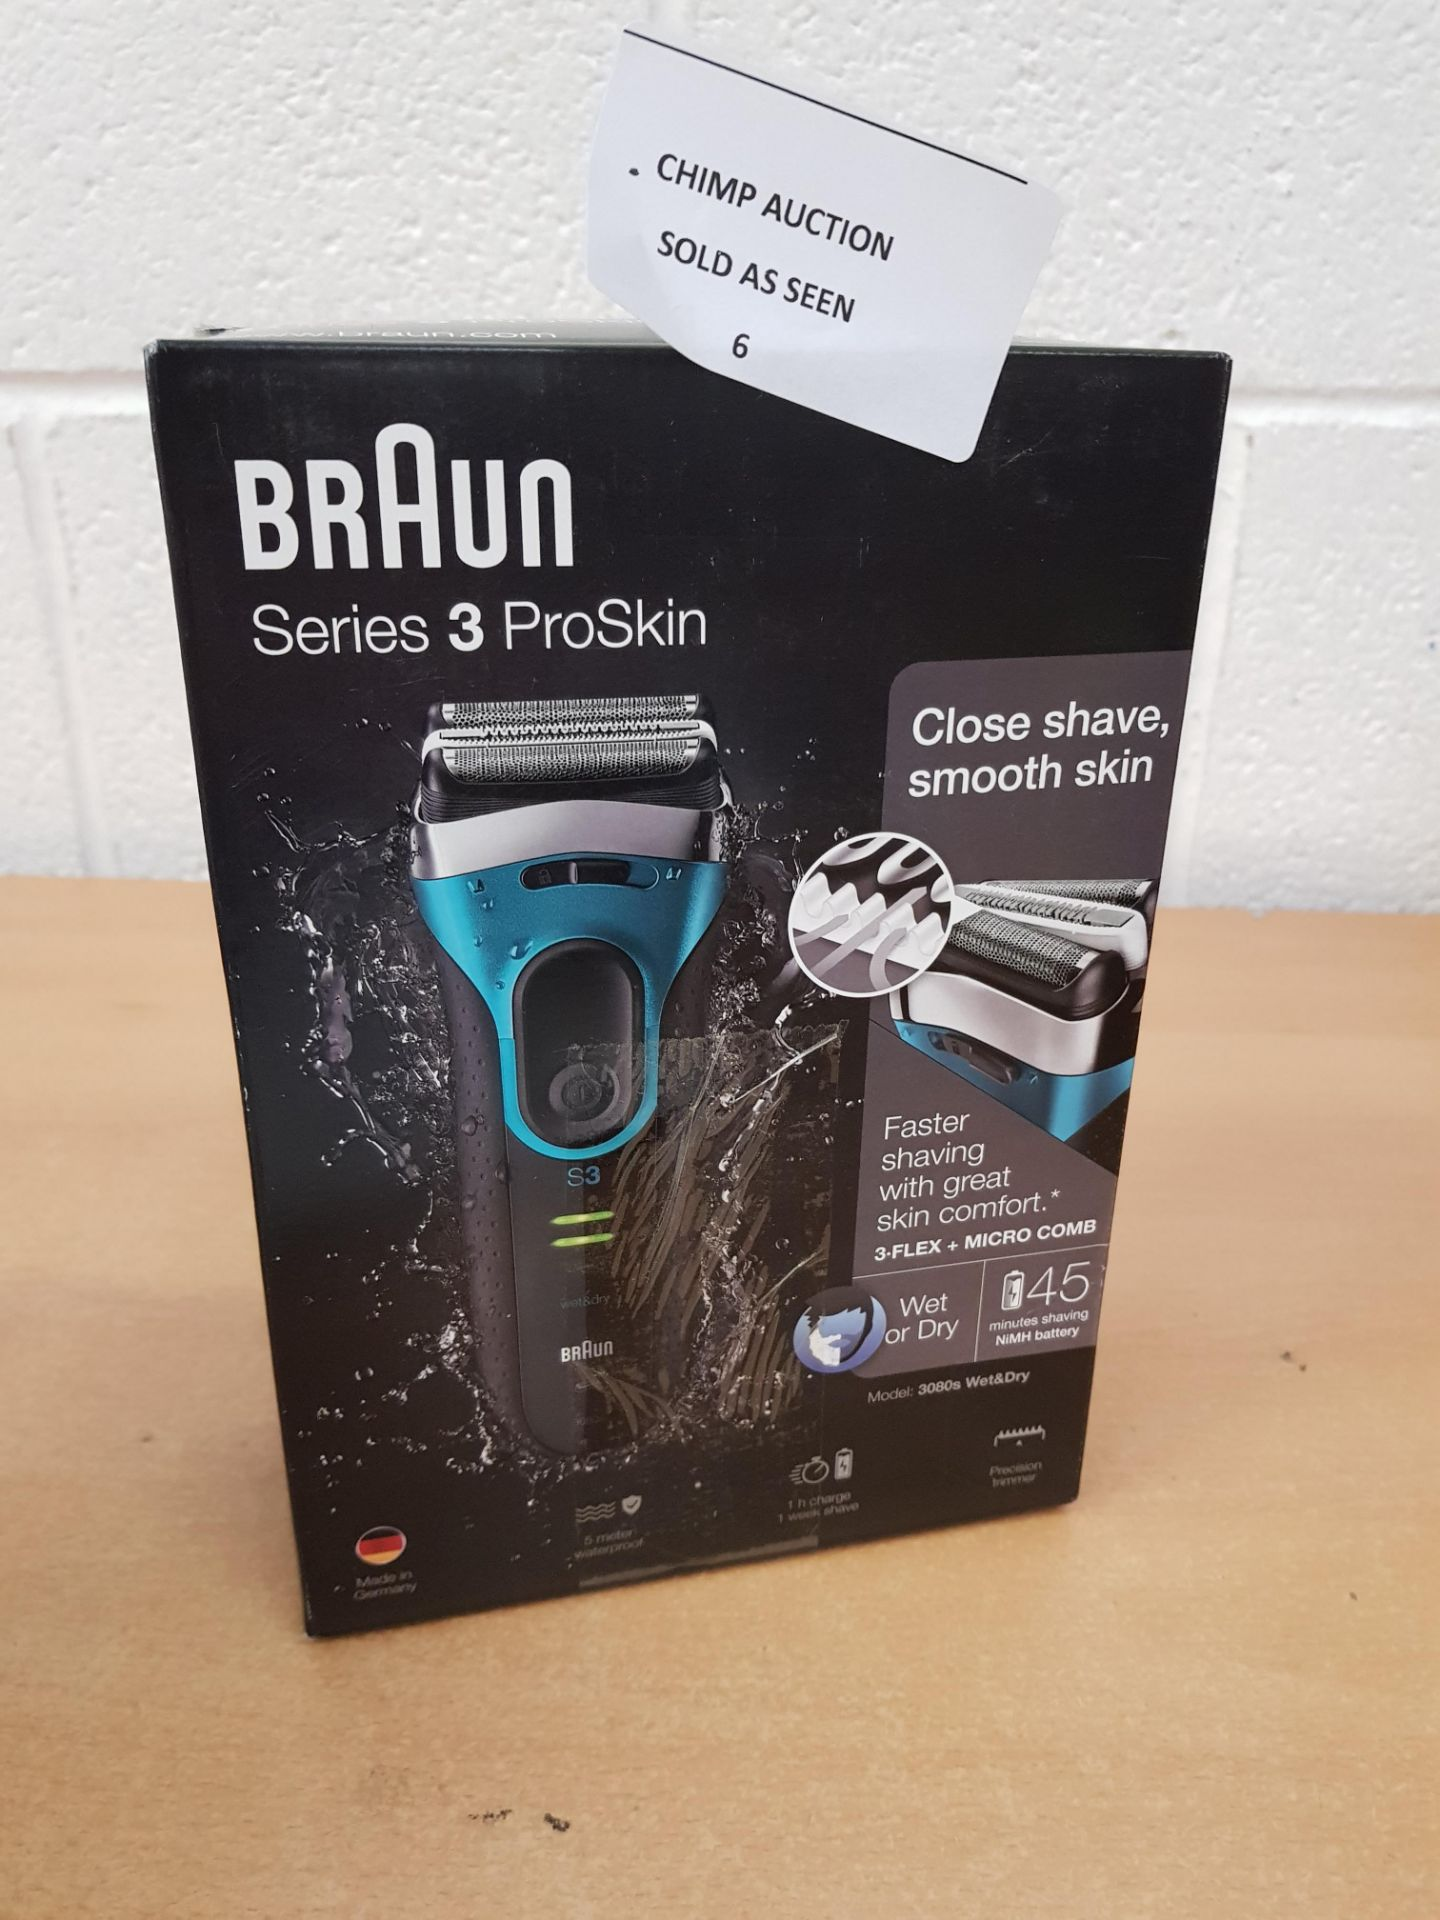 Lot 6 - Braun Series 3 ProSkin 3080s Electric Shaver, Wet and Dry RRP £149.99.